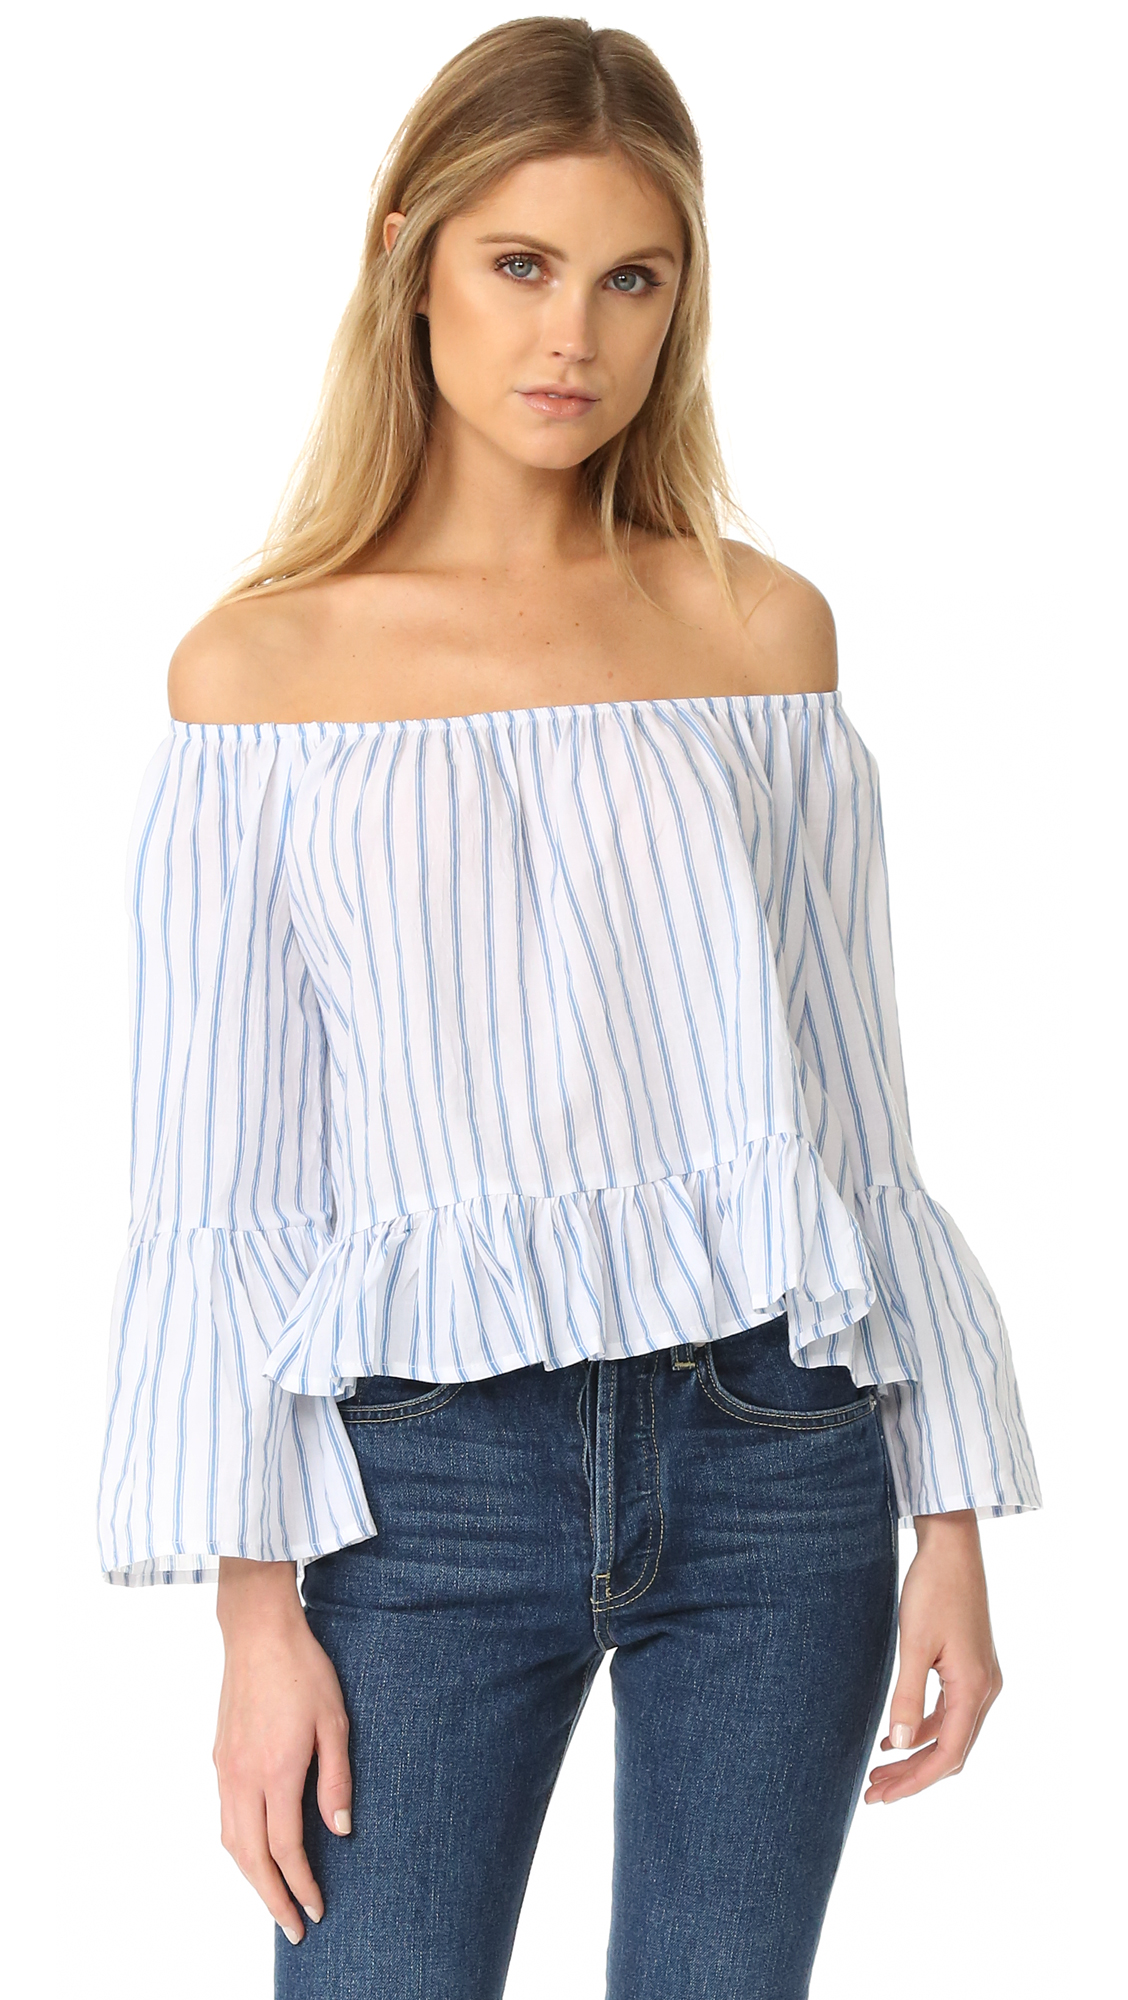 This breezy FAITHFULL THE BRAND off shoulder top is detailed with understated stripes. Elastic neckline. Long sleeves and flared cuffs. Fabric: Voile. 100% cotton. Hand wash. Imported, Indonesia. Measurements Length: 18.5in / 47cm, from center back Measurements from